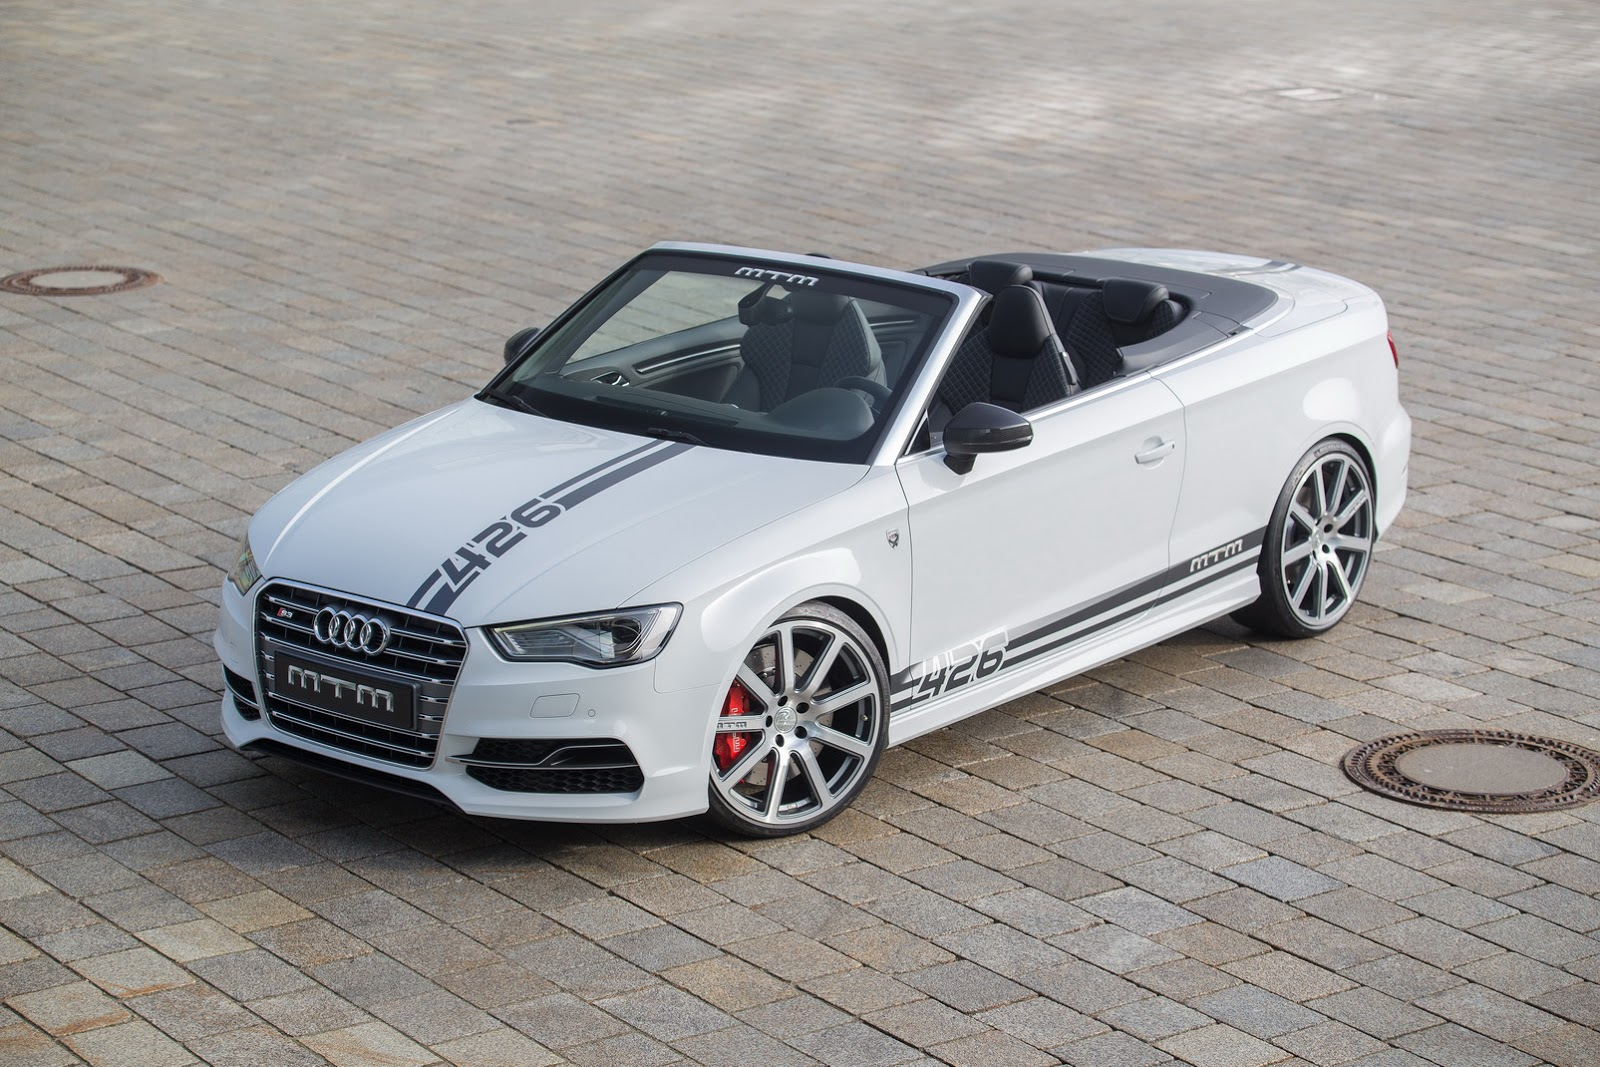 geneva show bound mtm audi s3 cabrio has 426ps and costs nearly 100k. Black Bedroom Furniture Sets. Home Design Ideas